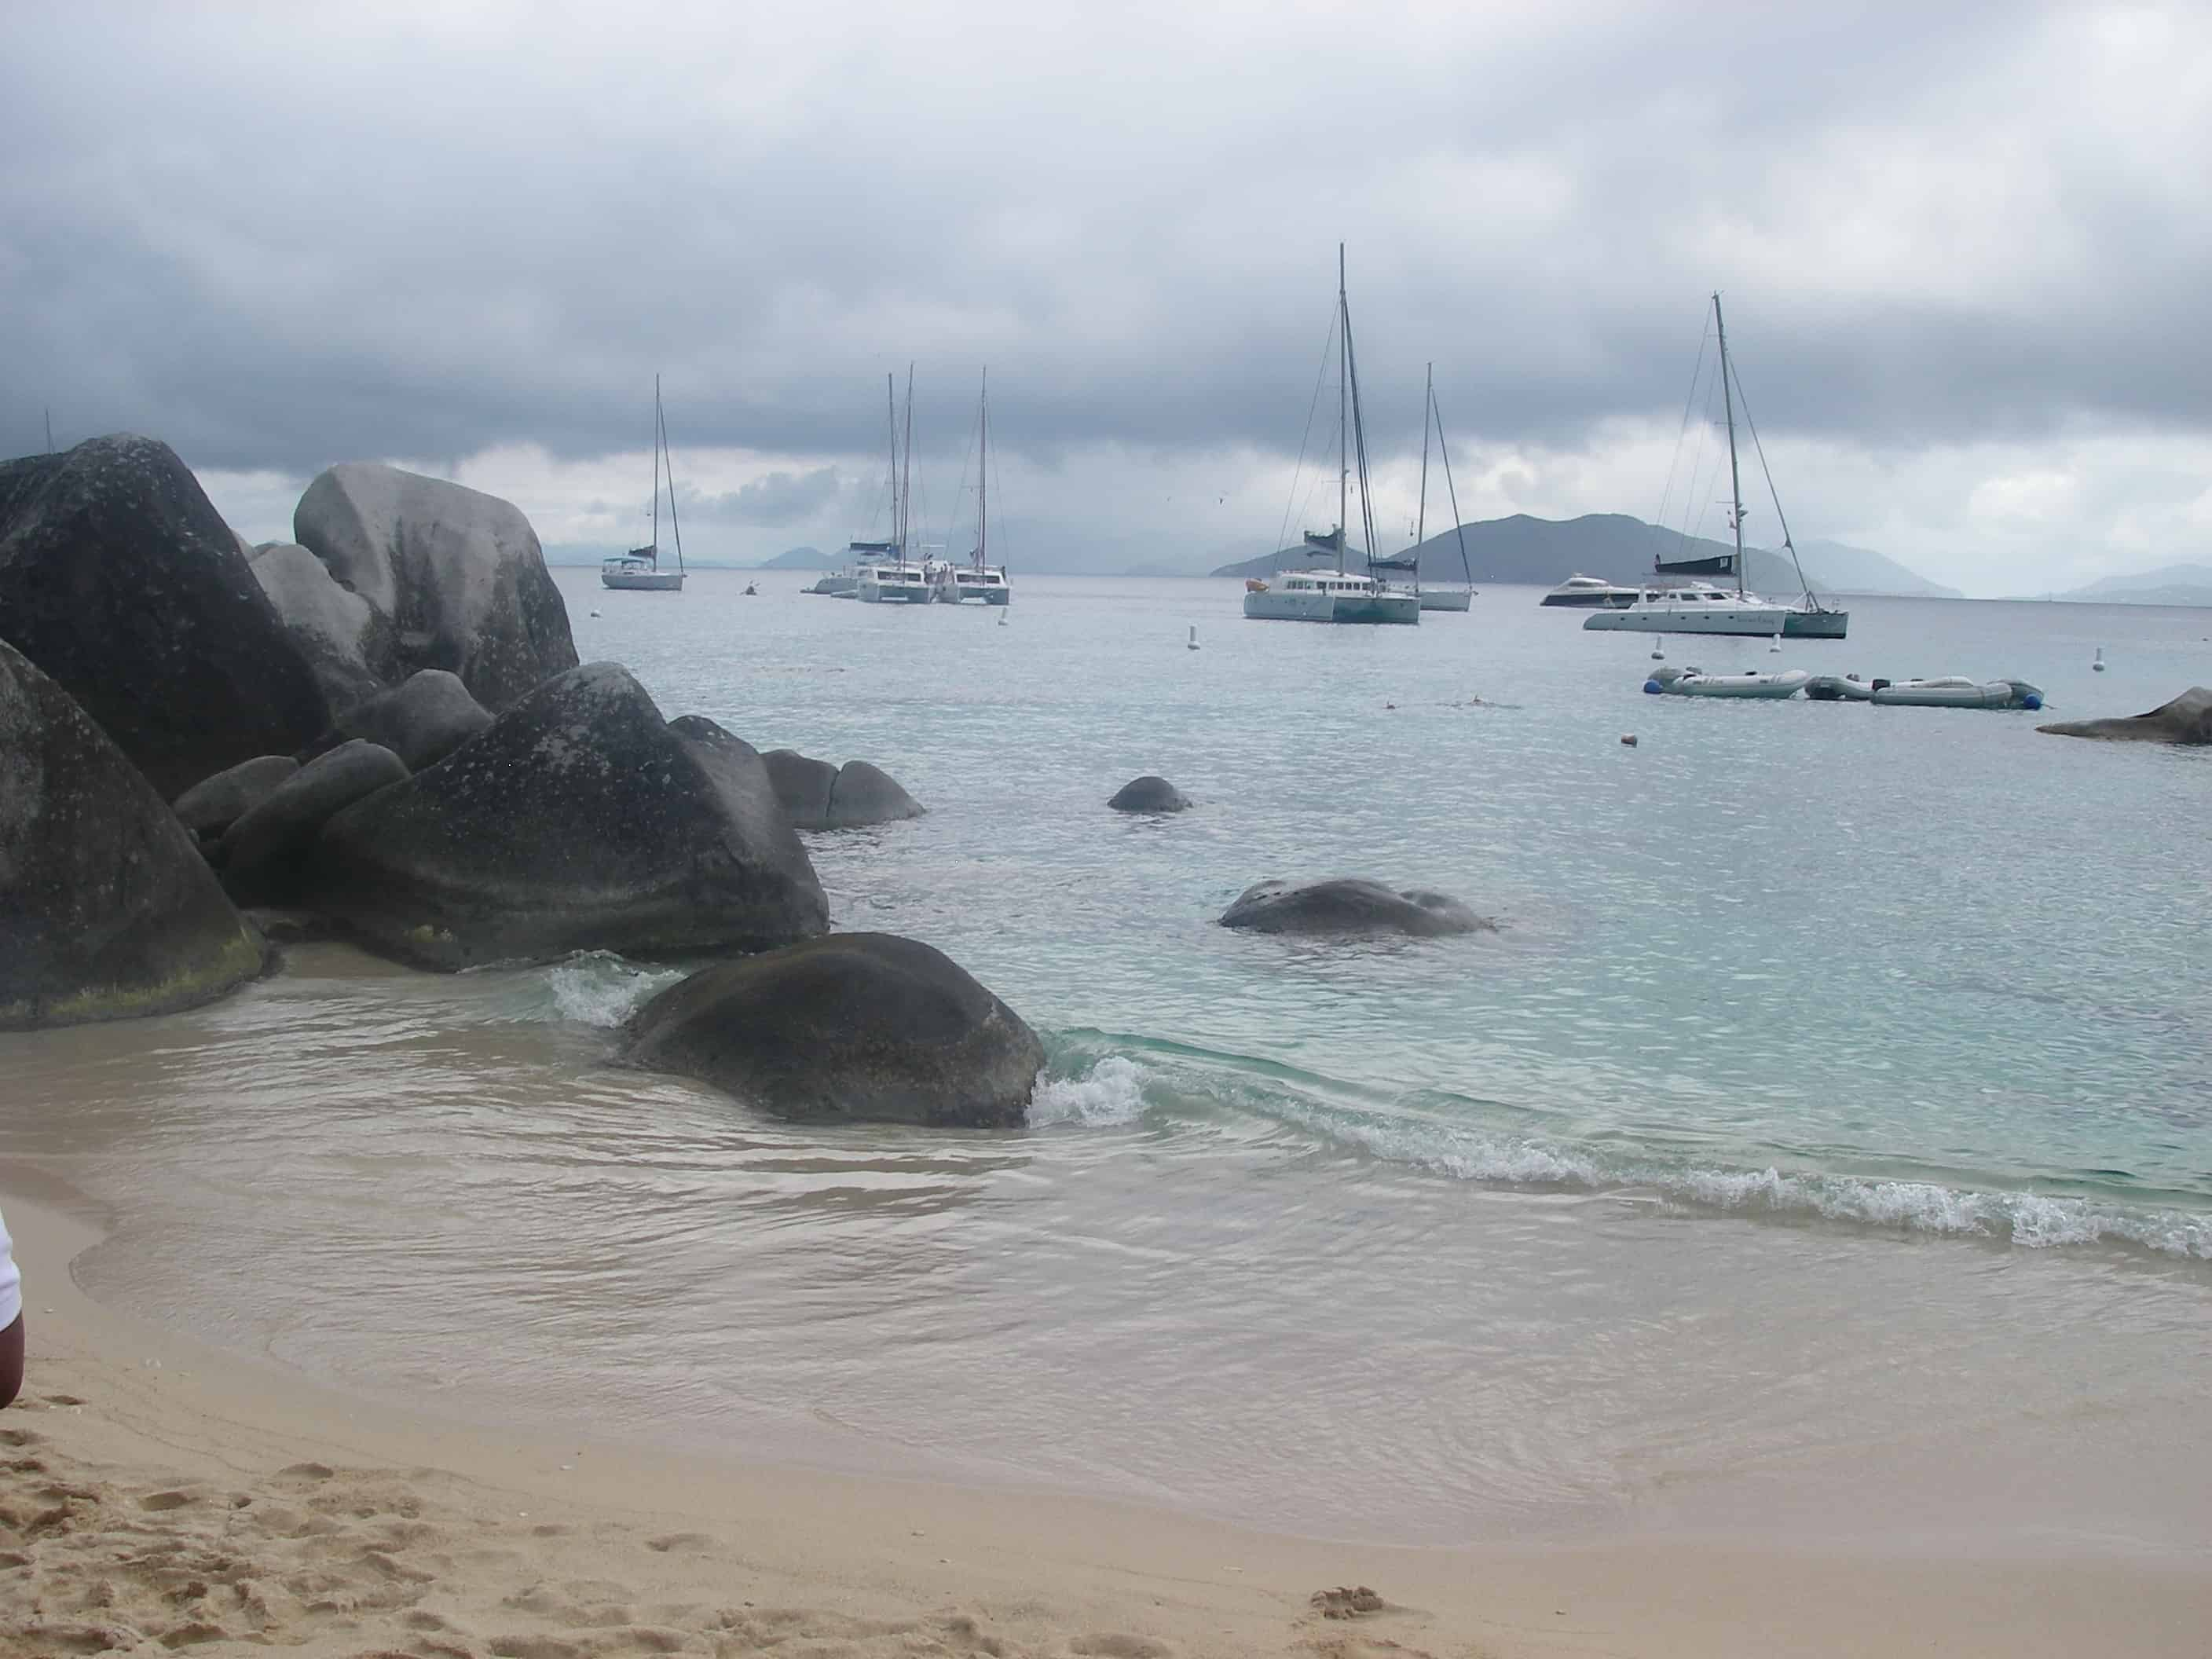 Views of the enormous boulders at The Baths National Park, Virgin Gorda.